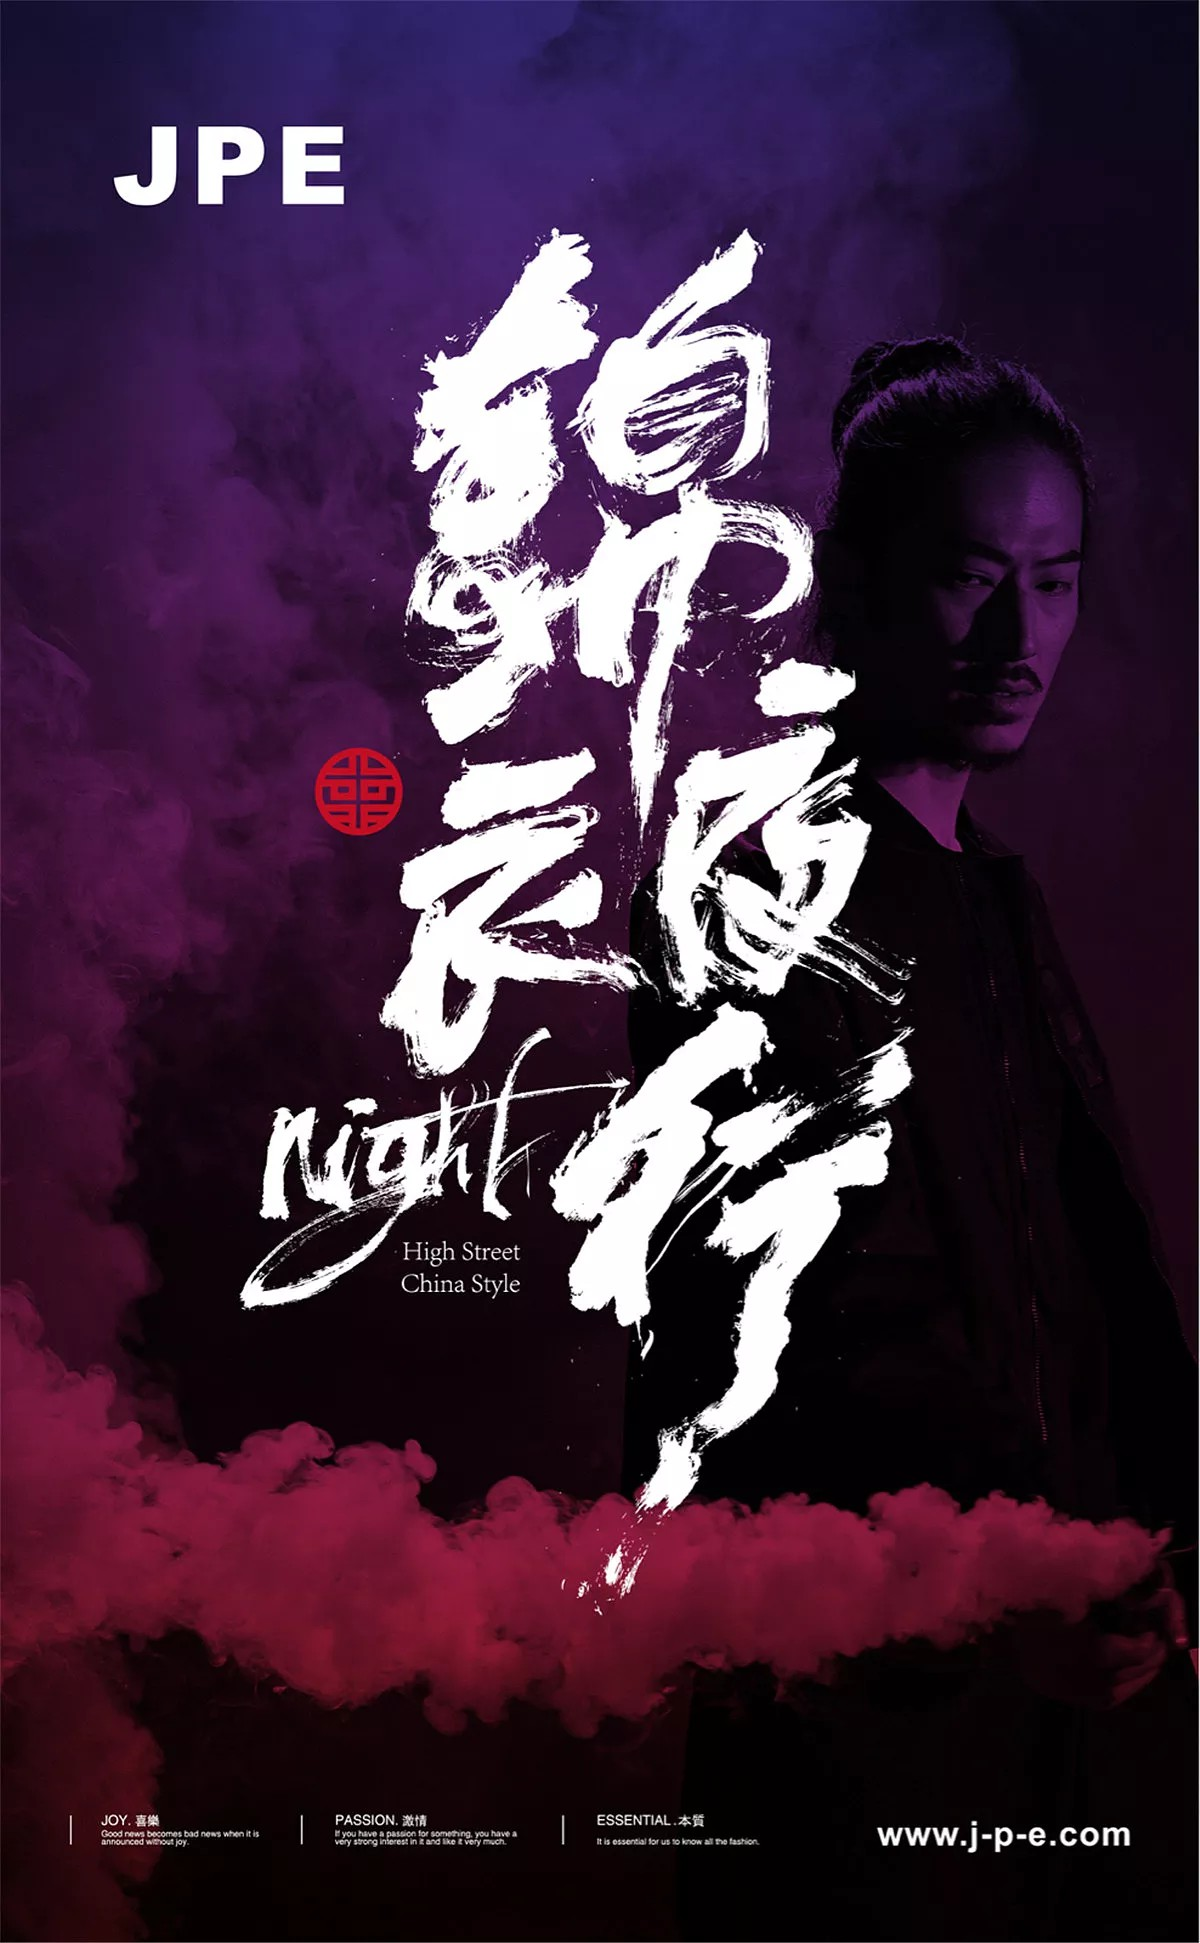 15P Calligraphy Font Design - Huangling Yehe - On the Business Application of Calligraphy